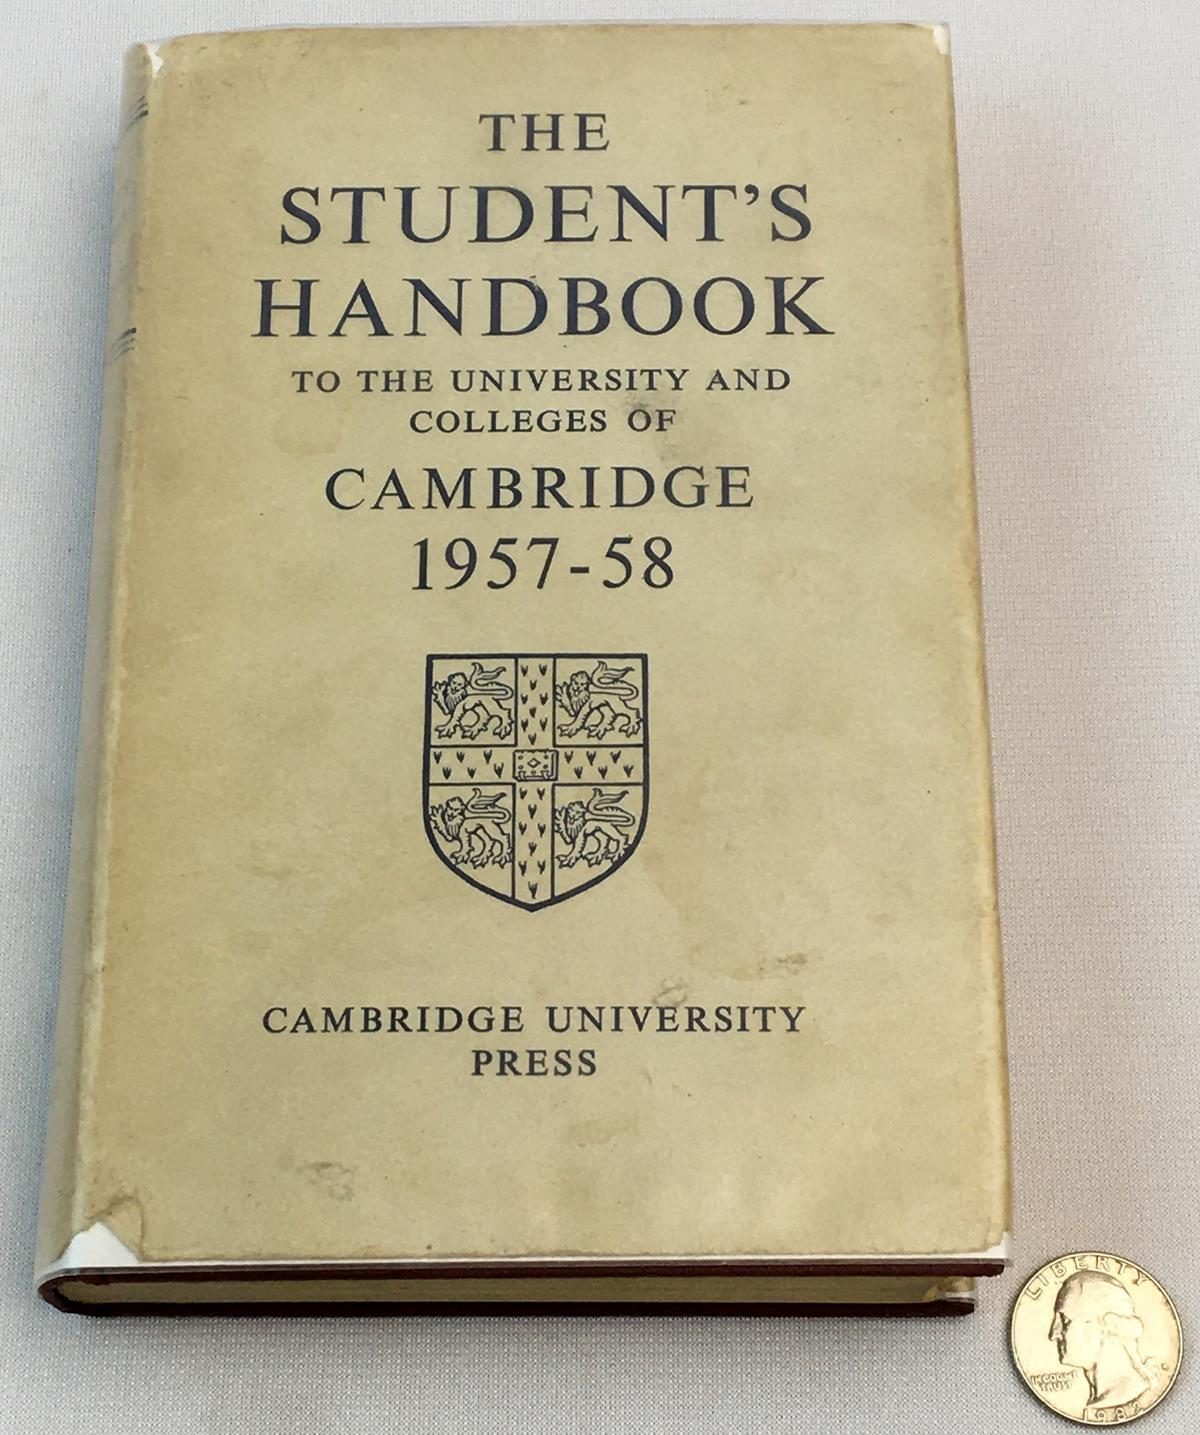 1957 The Student's Handbook To The University & Colleges of Cambridge 1957-58 w/ Dust Jacket